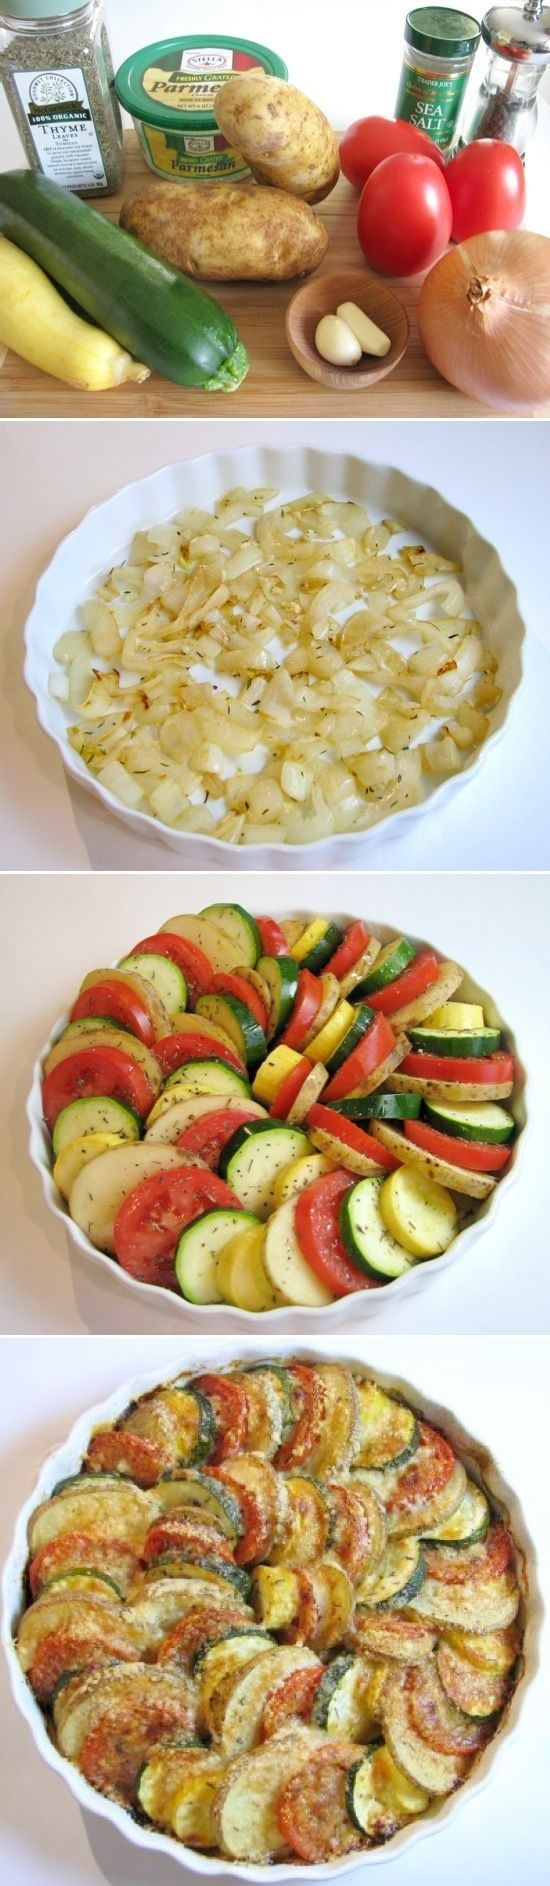 Parmesan Vegetable Spiral: a bed of onions is topped by a medley of veggies (tomatoes, potatoes, squash